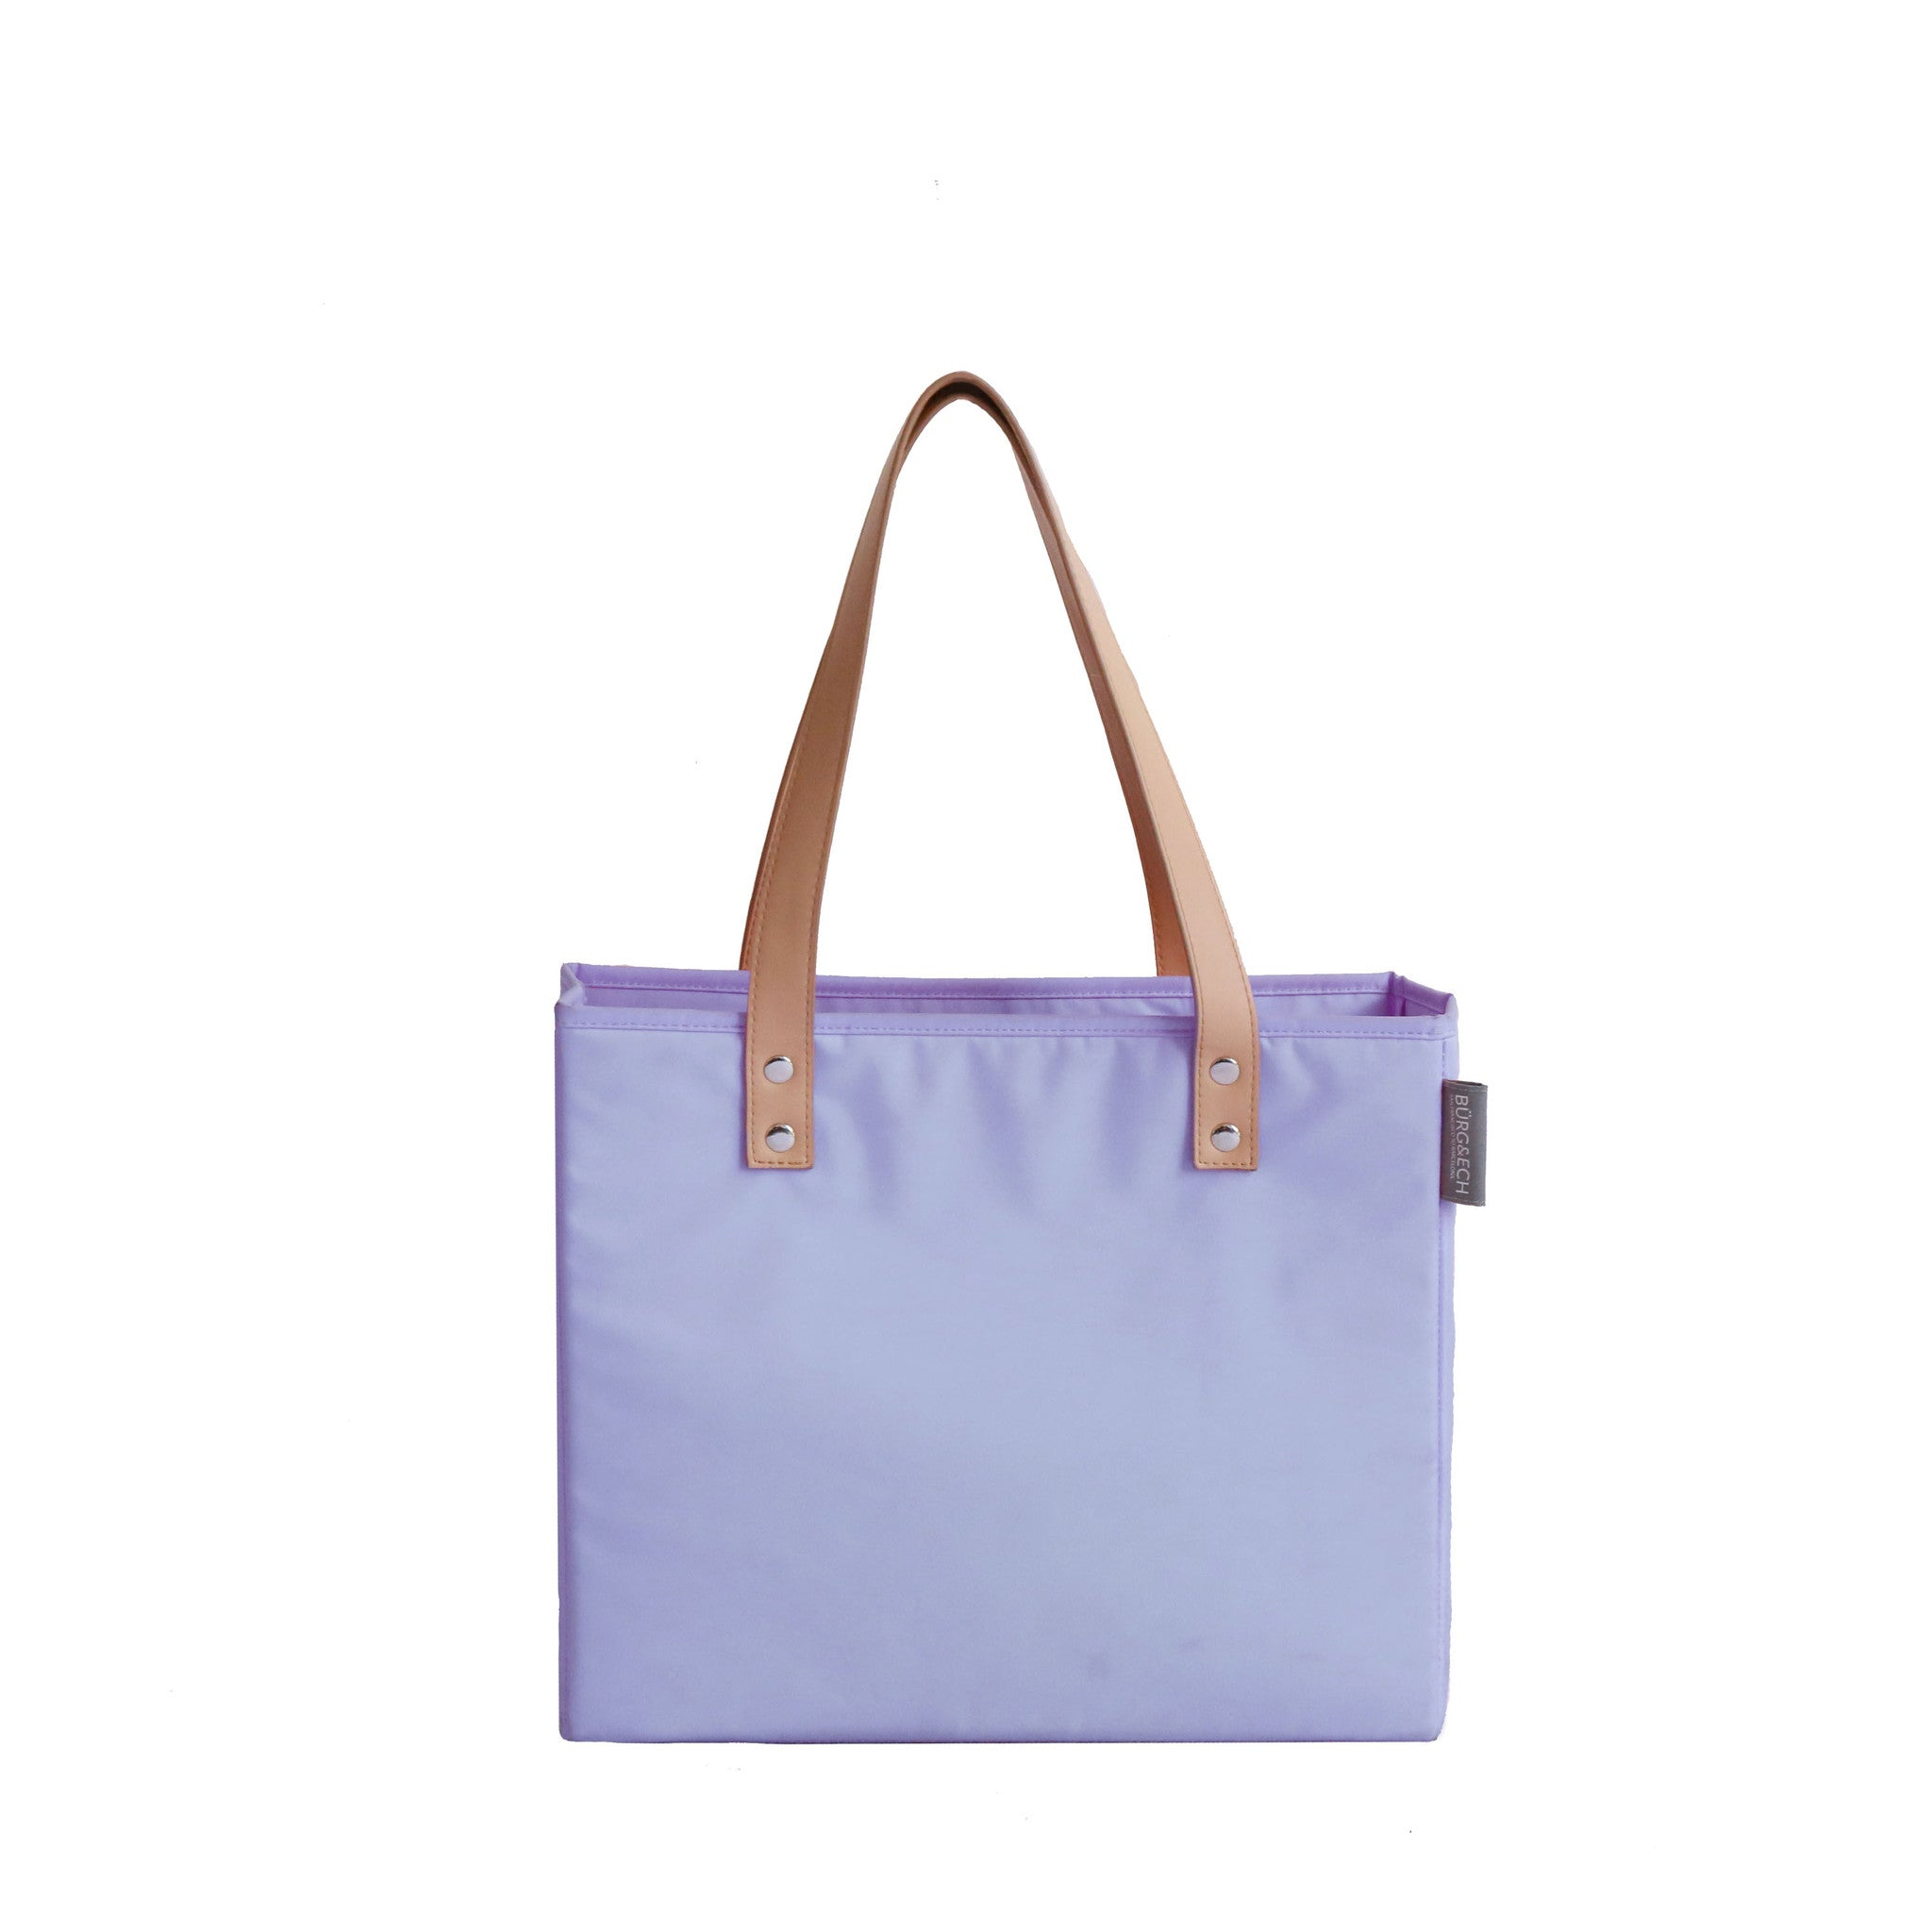 BUTTERFLY TOTE - LILA